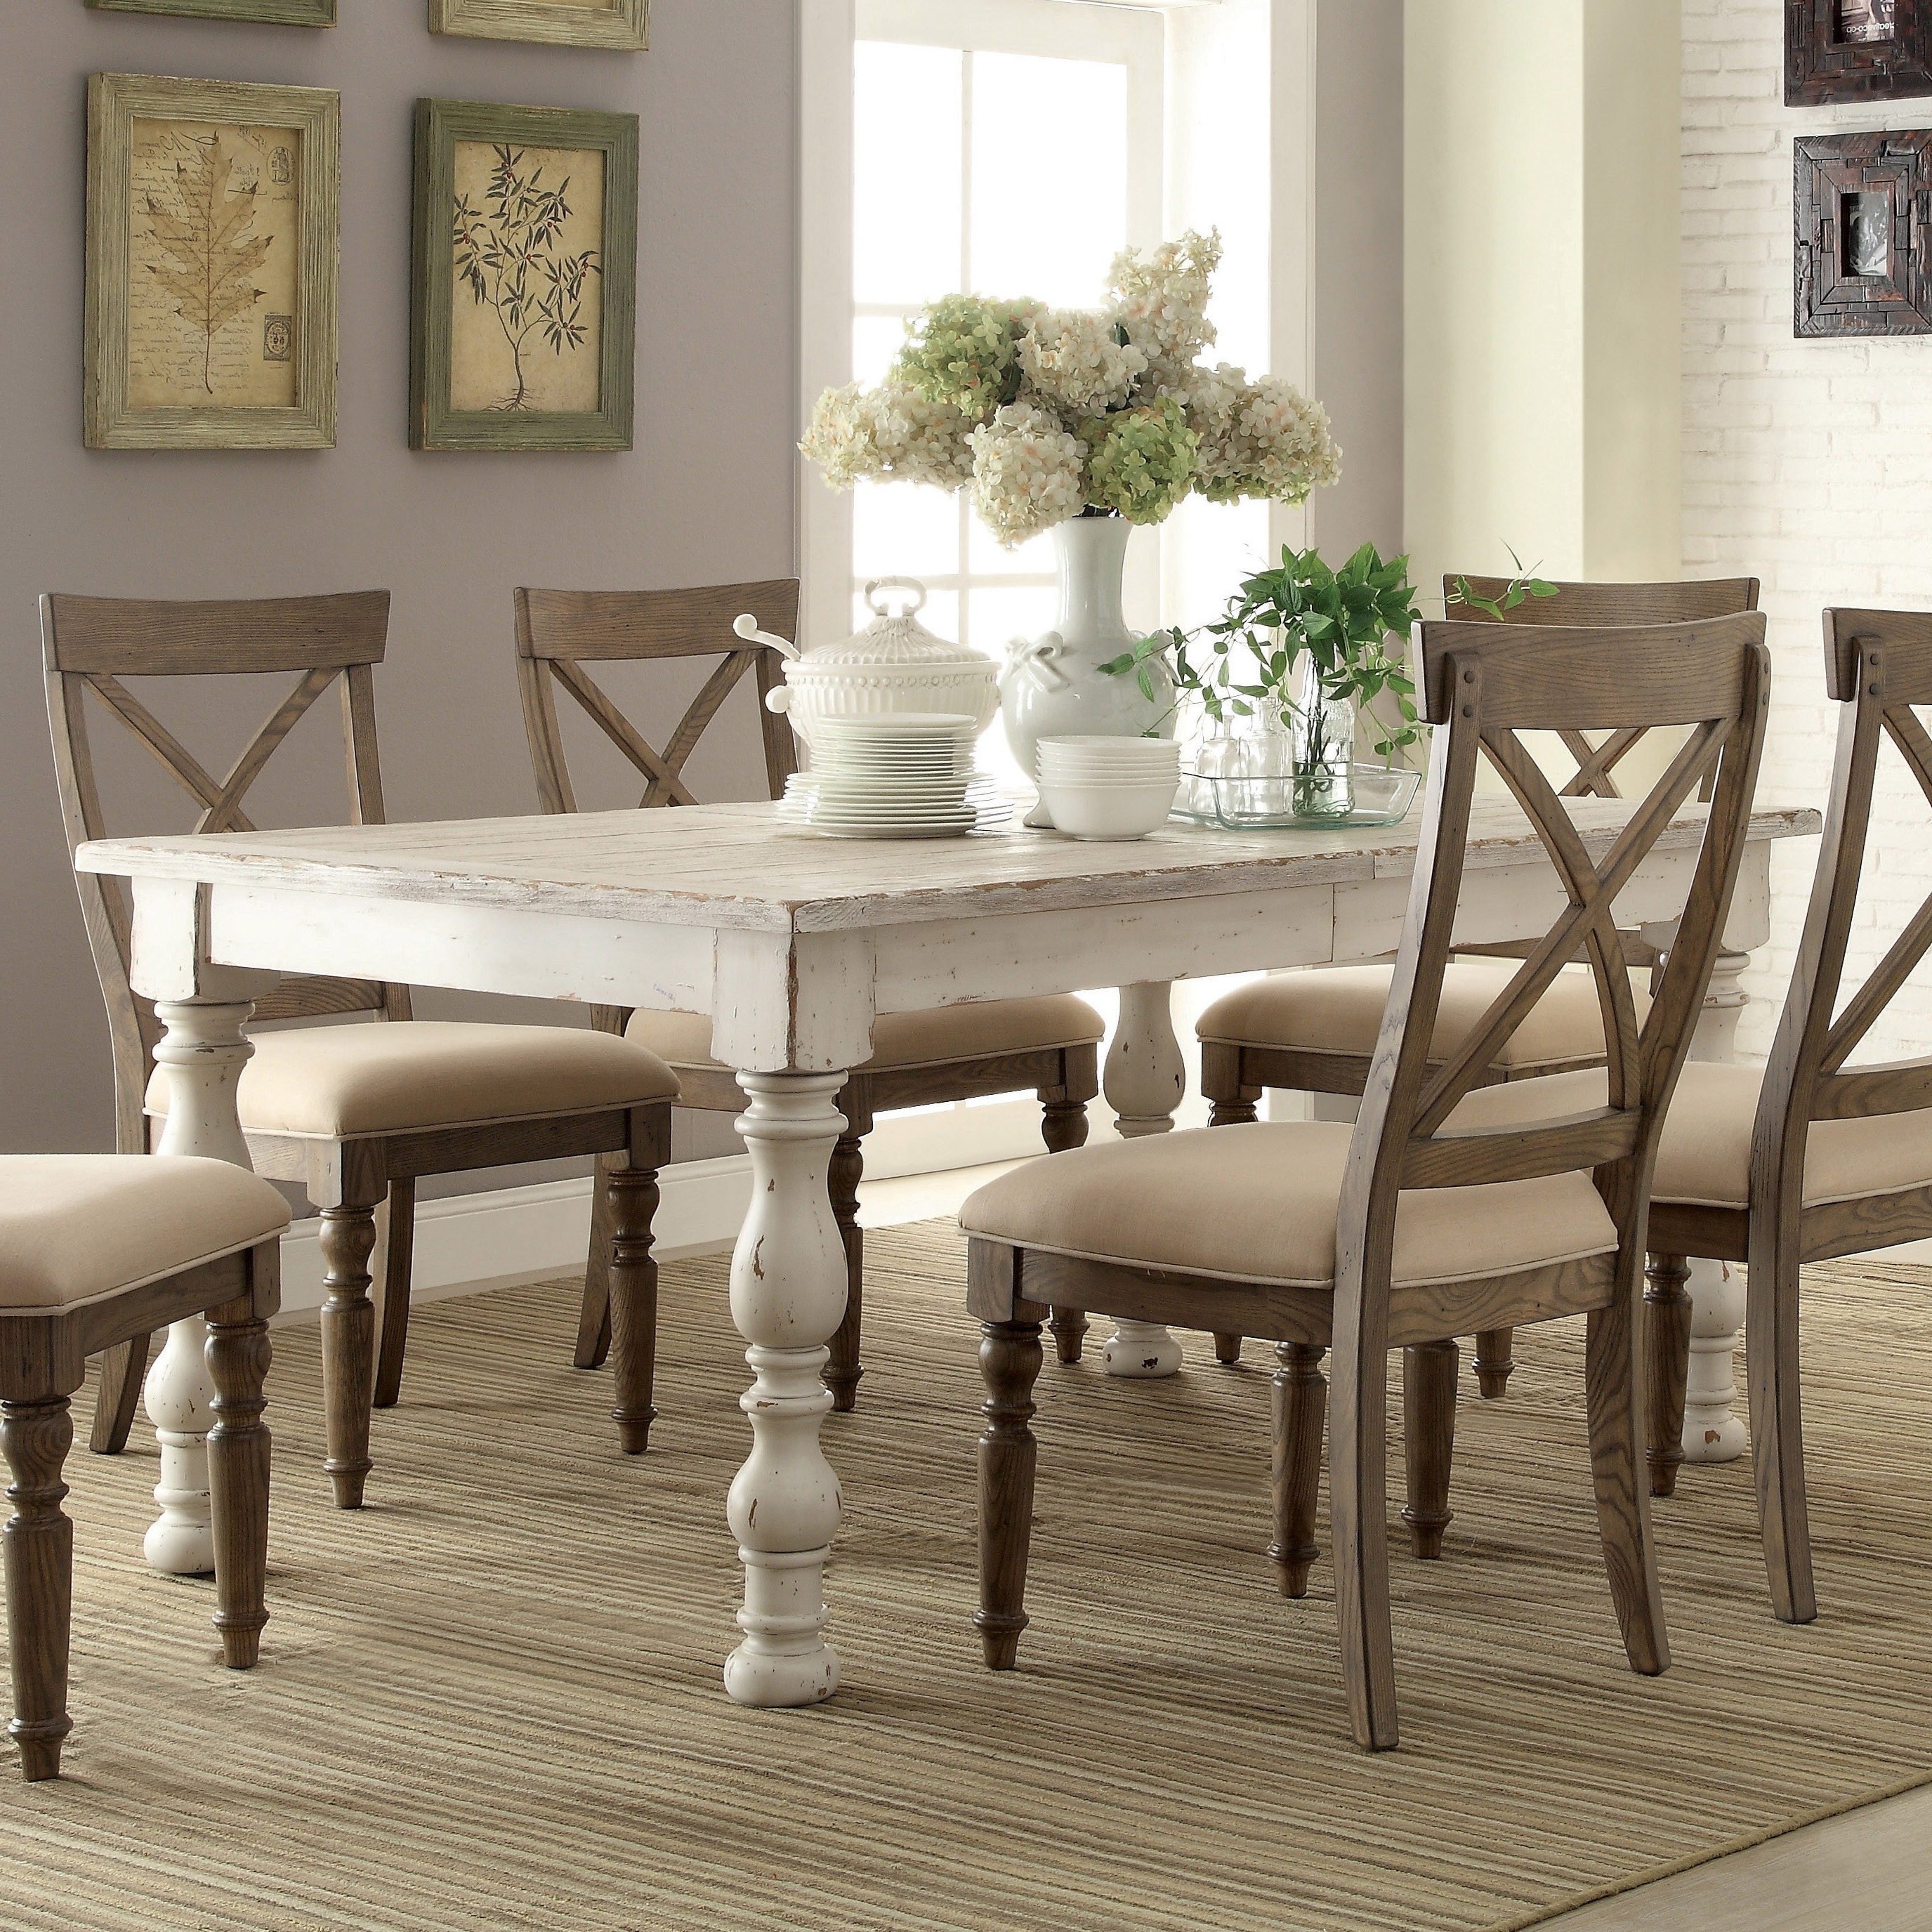 Most Up To Date Aberdeen Wood Rectangular Dining Table In Weathered Worn White With Regard To Rectangular Dining Tables Sets (View 3 of 25)